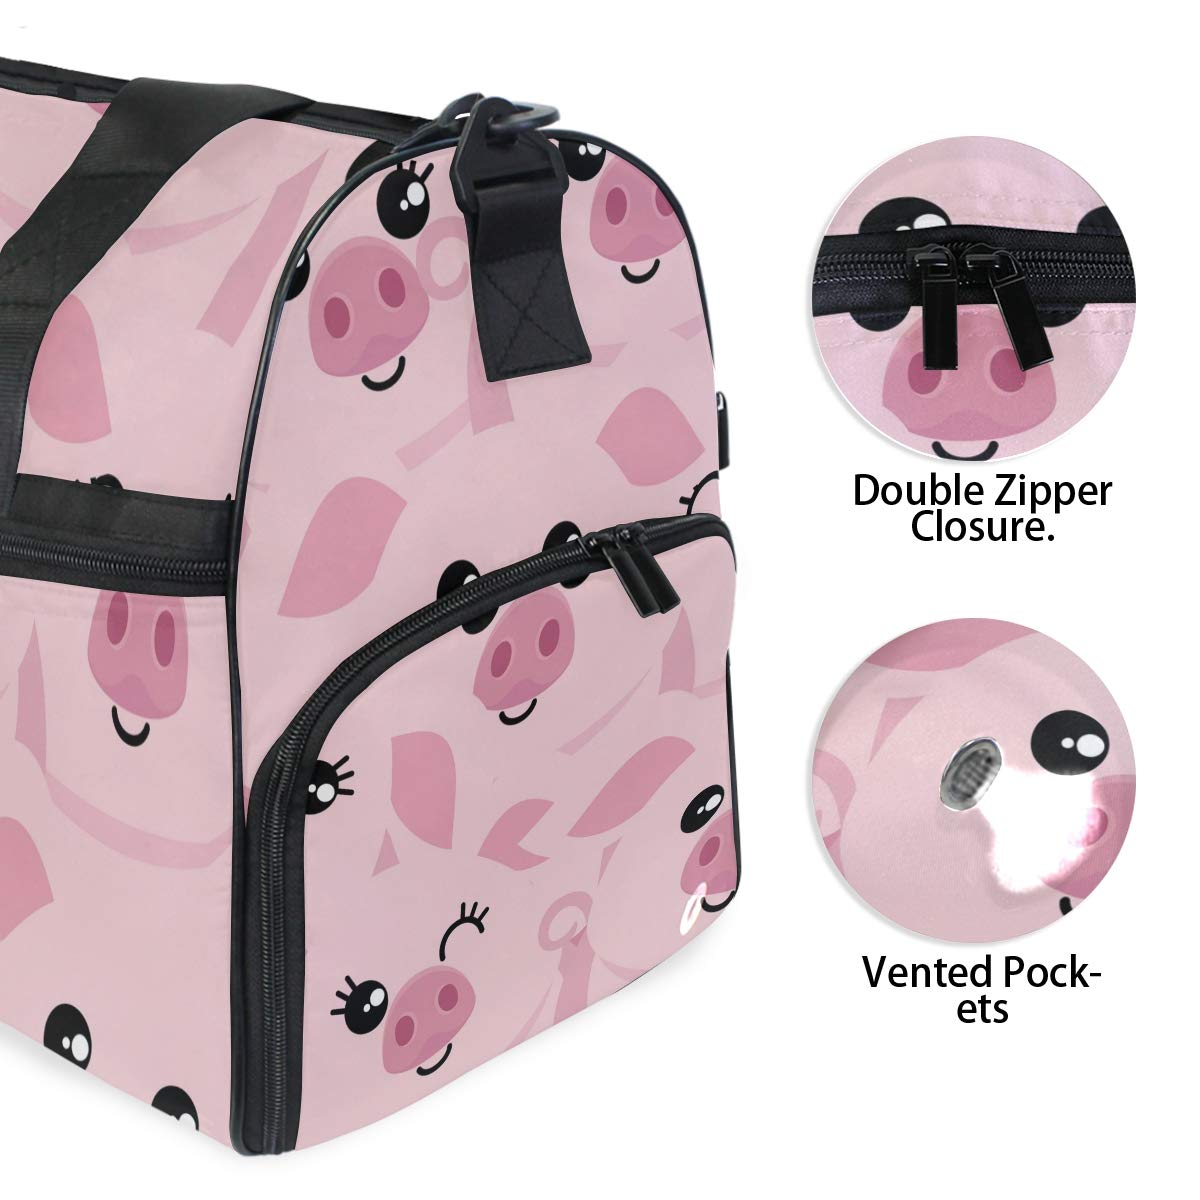 Gym Vacation Travel Duffle Bag Cute Pink Pigs Heads Waterproof Lightweight Luggage bag for Sports